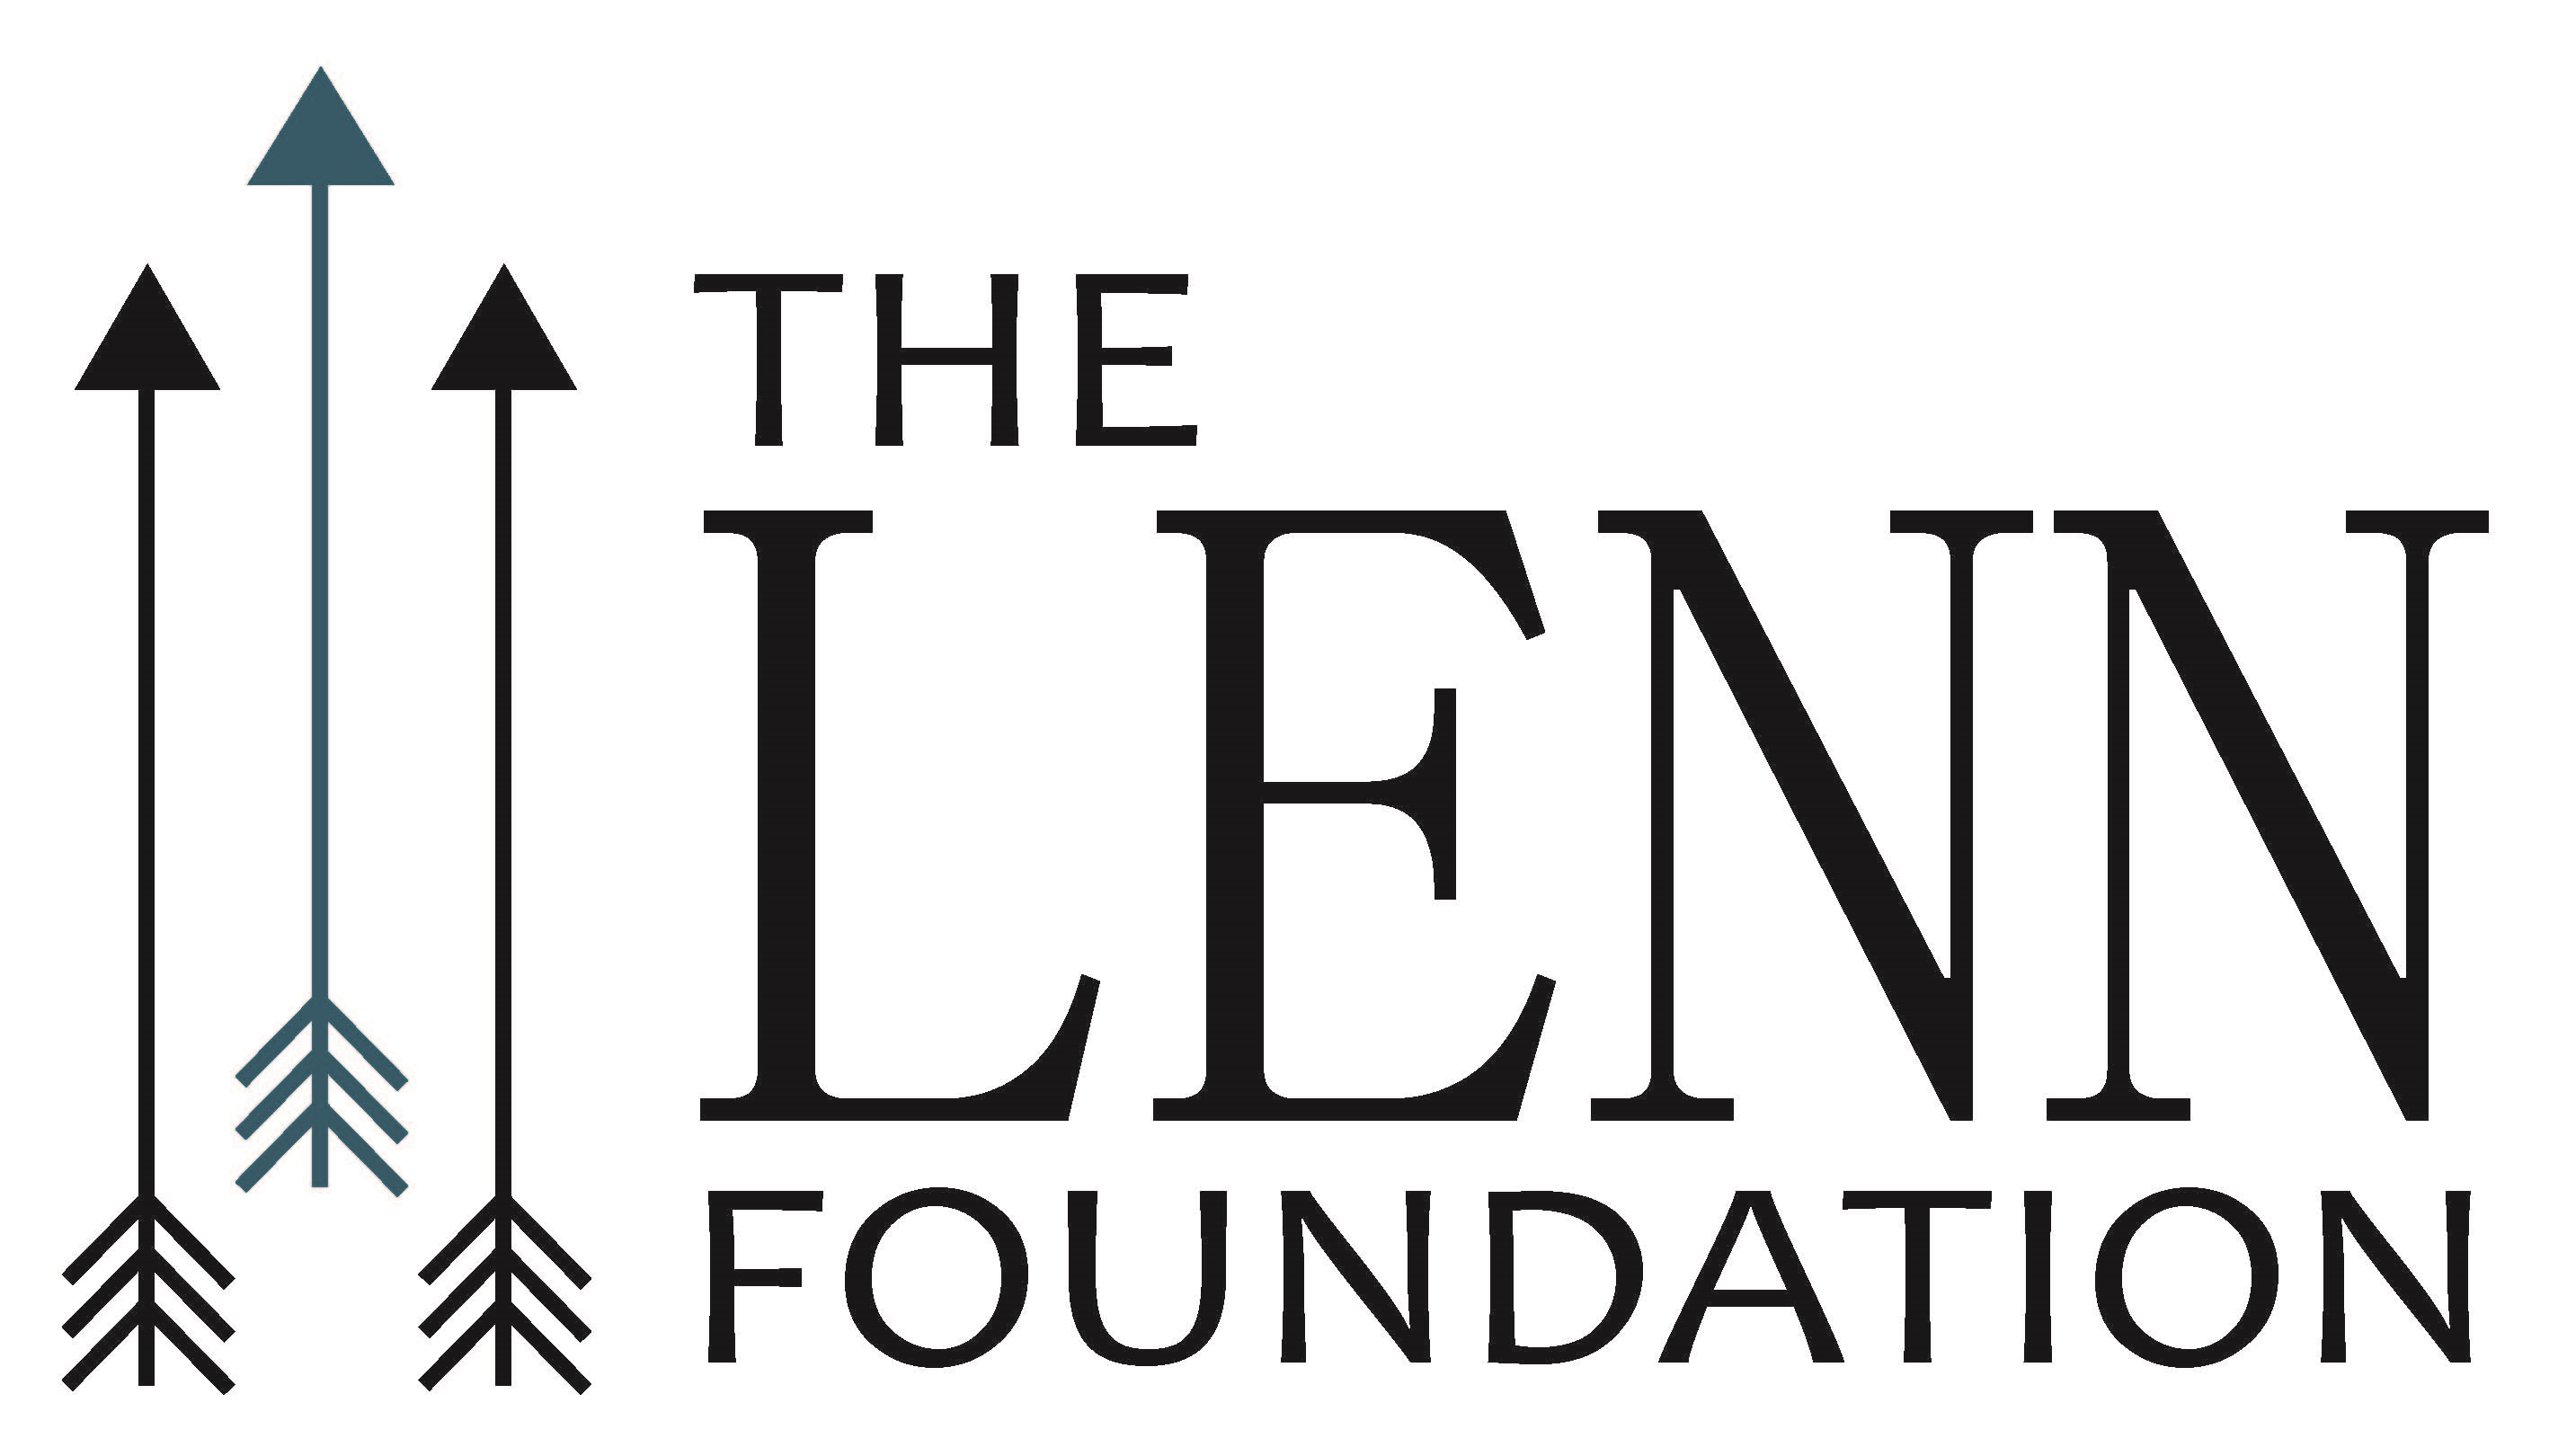 The LENN Foundation Logo